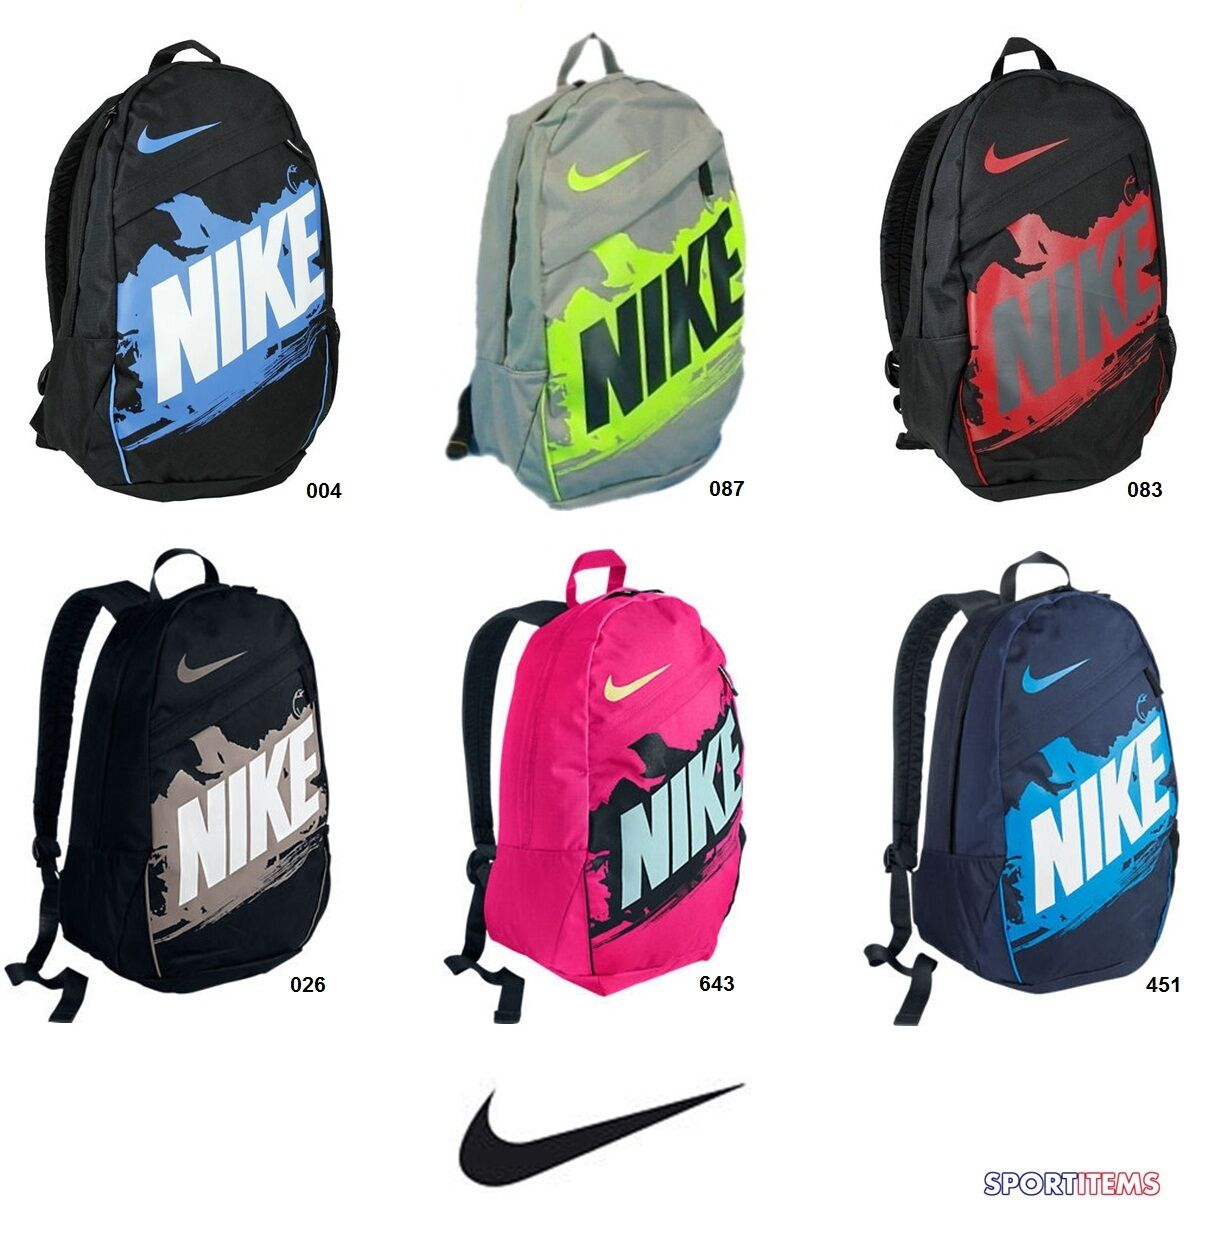 Details about Nike Backpack Bag Classic Athletic Travel School Gym ...